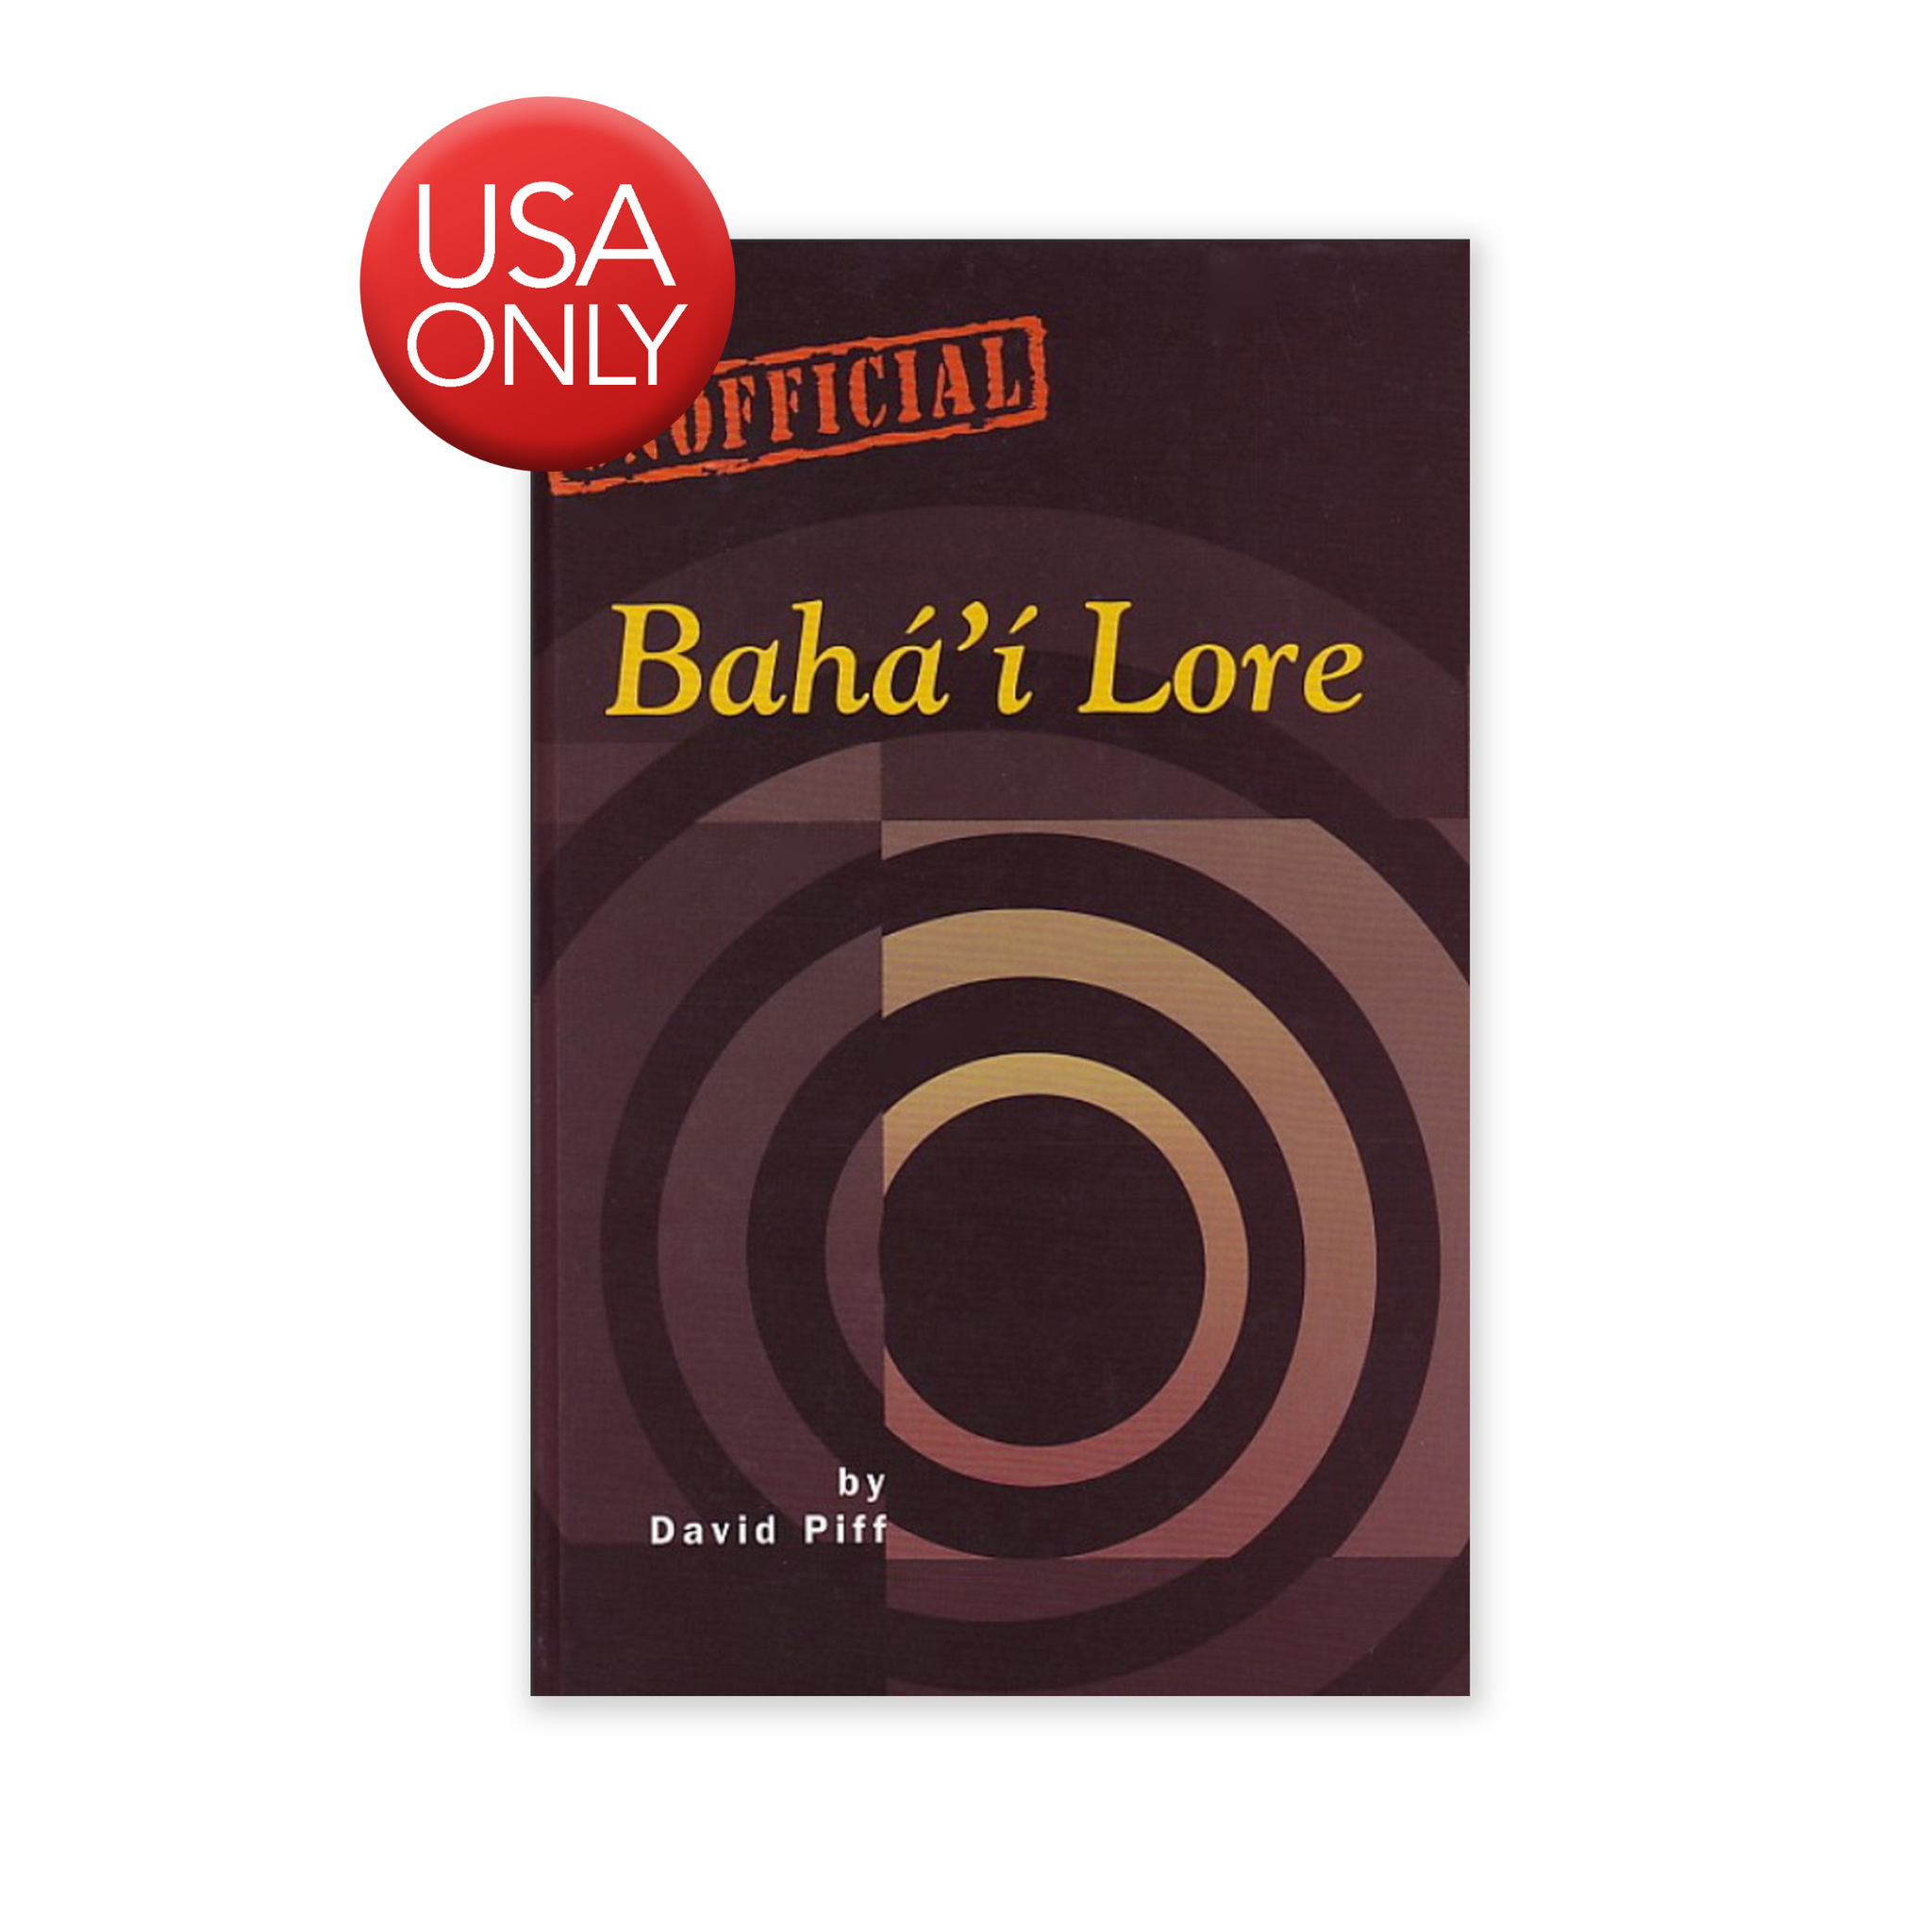 Baha'i Lore - Study of Content and Function of Unofficial Lore in a Religious Community